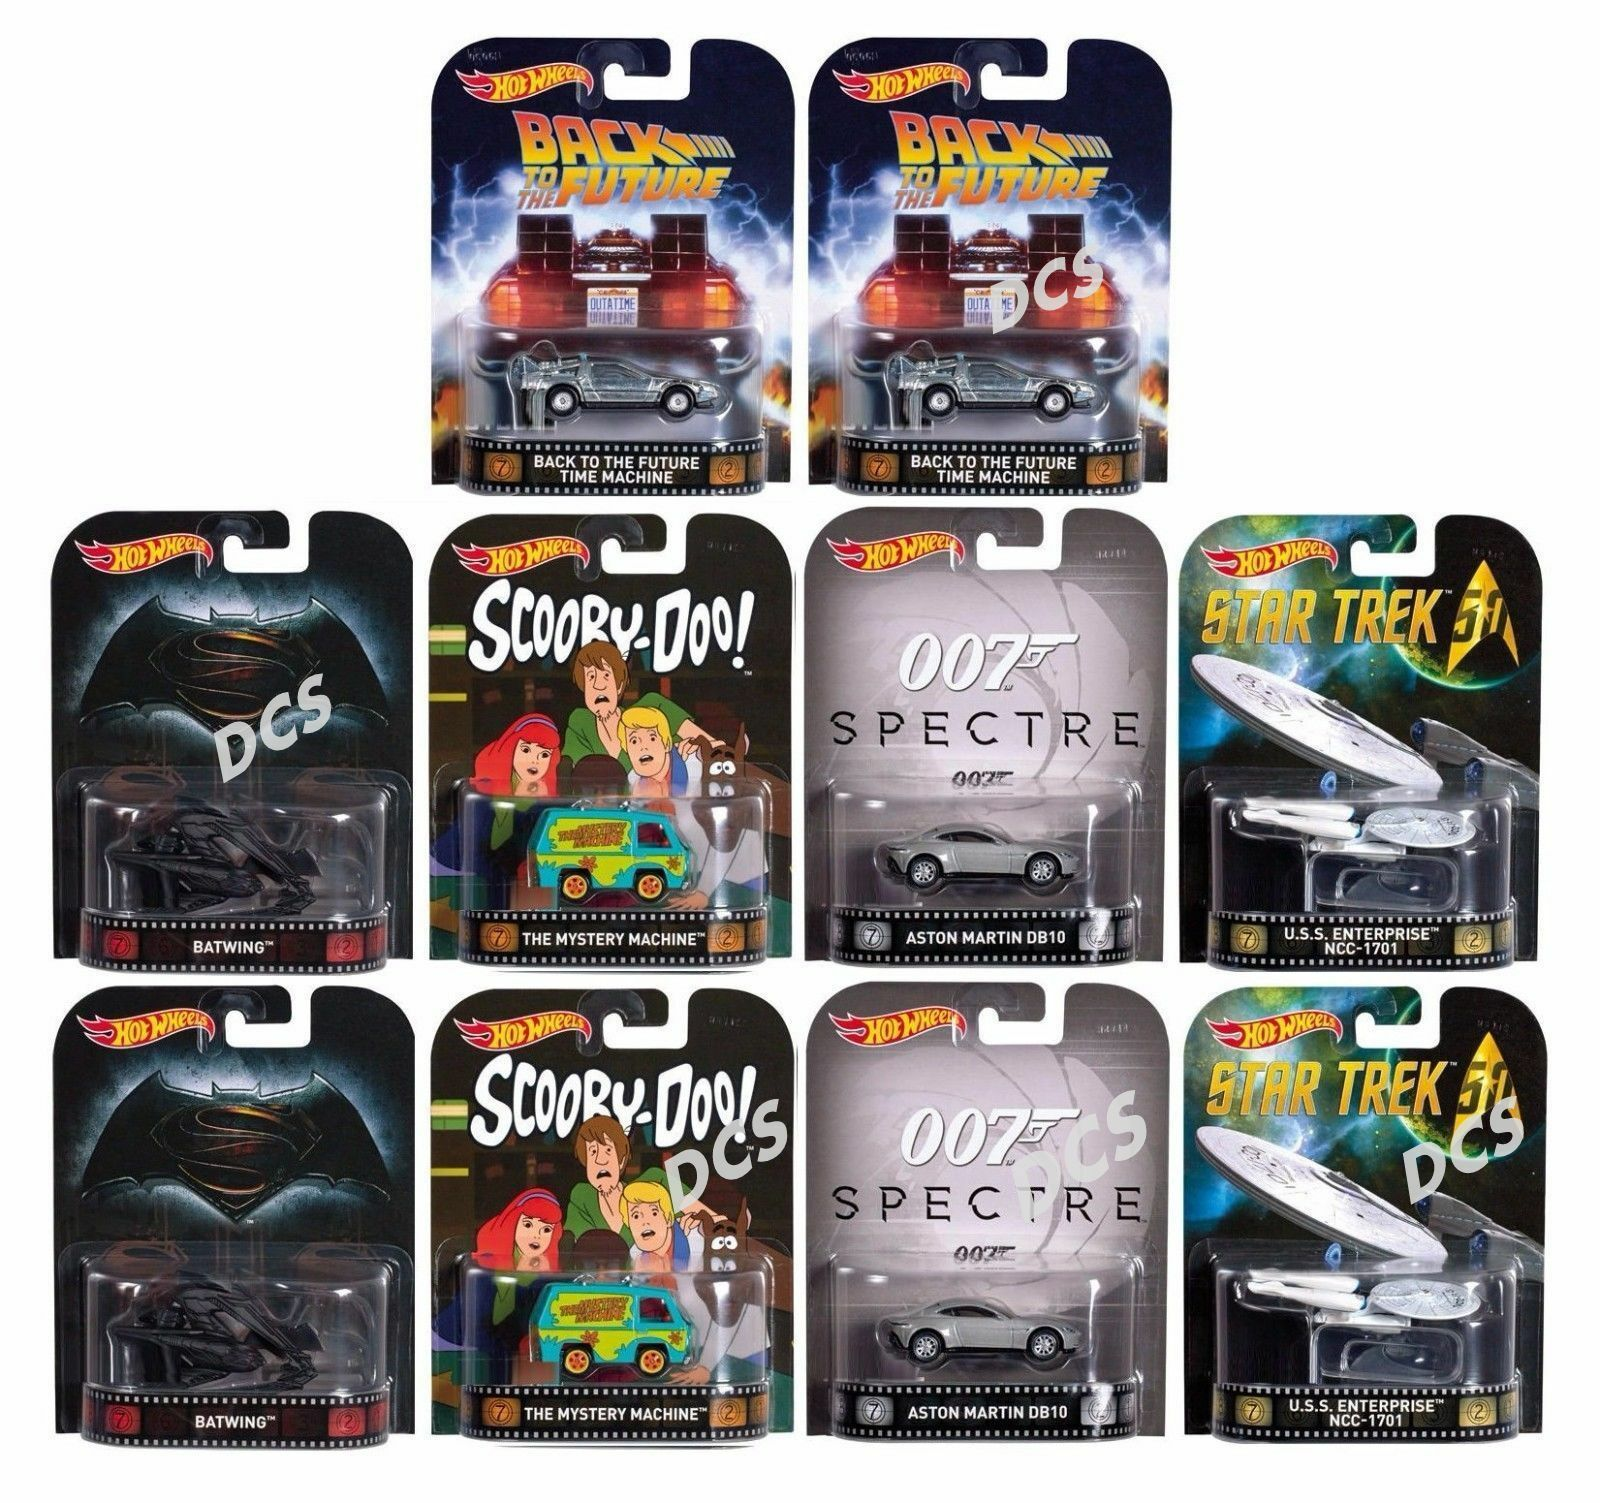 HOT WHEELS 1 64 RETRO ENTERTAINMENT B CASE ASSORTMENT Set Of 10 DMC55-959B